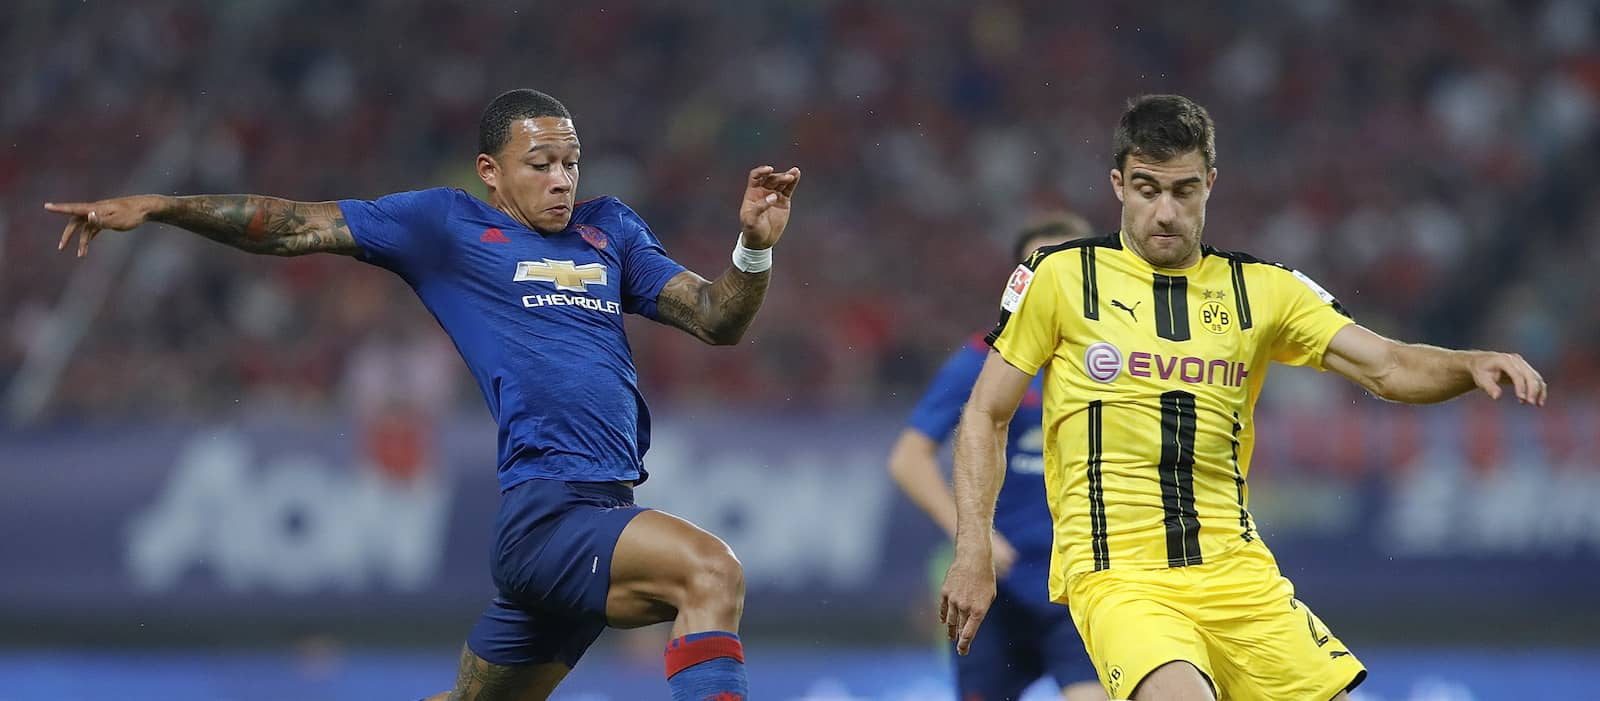 Memphis Depay trains with Manchester United as exit talks intensify